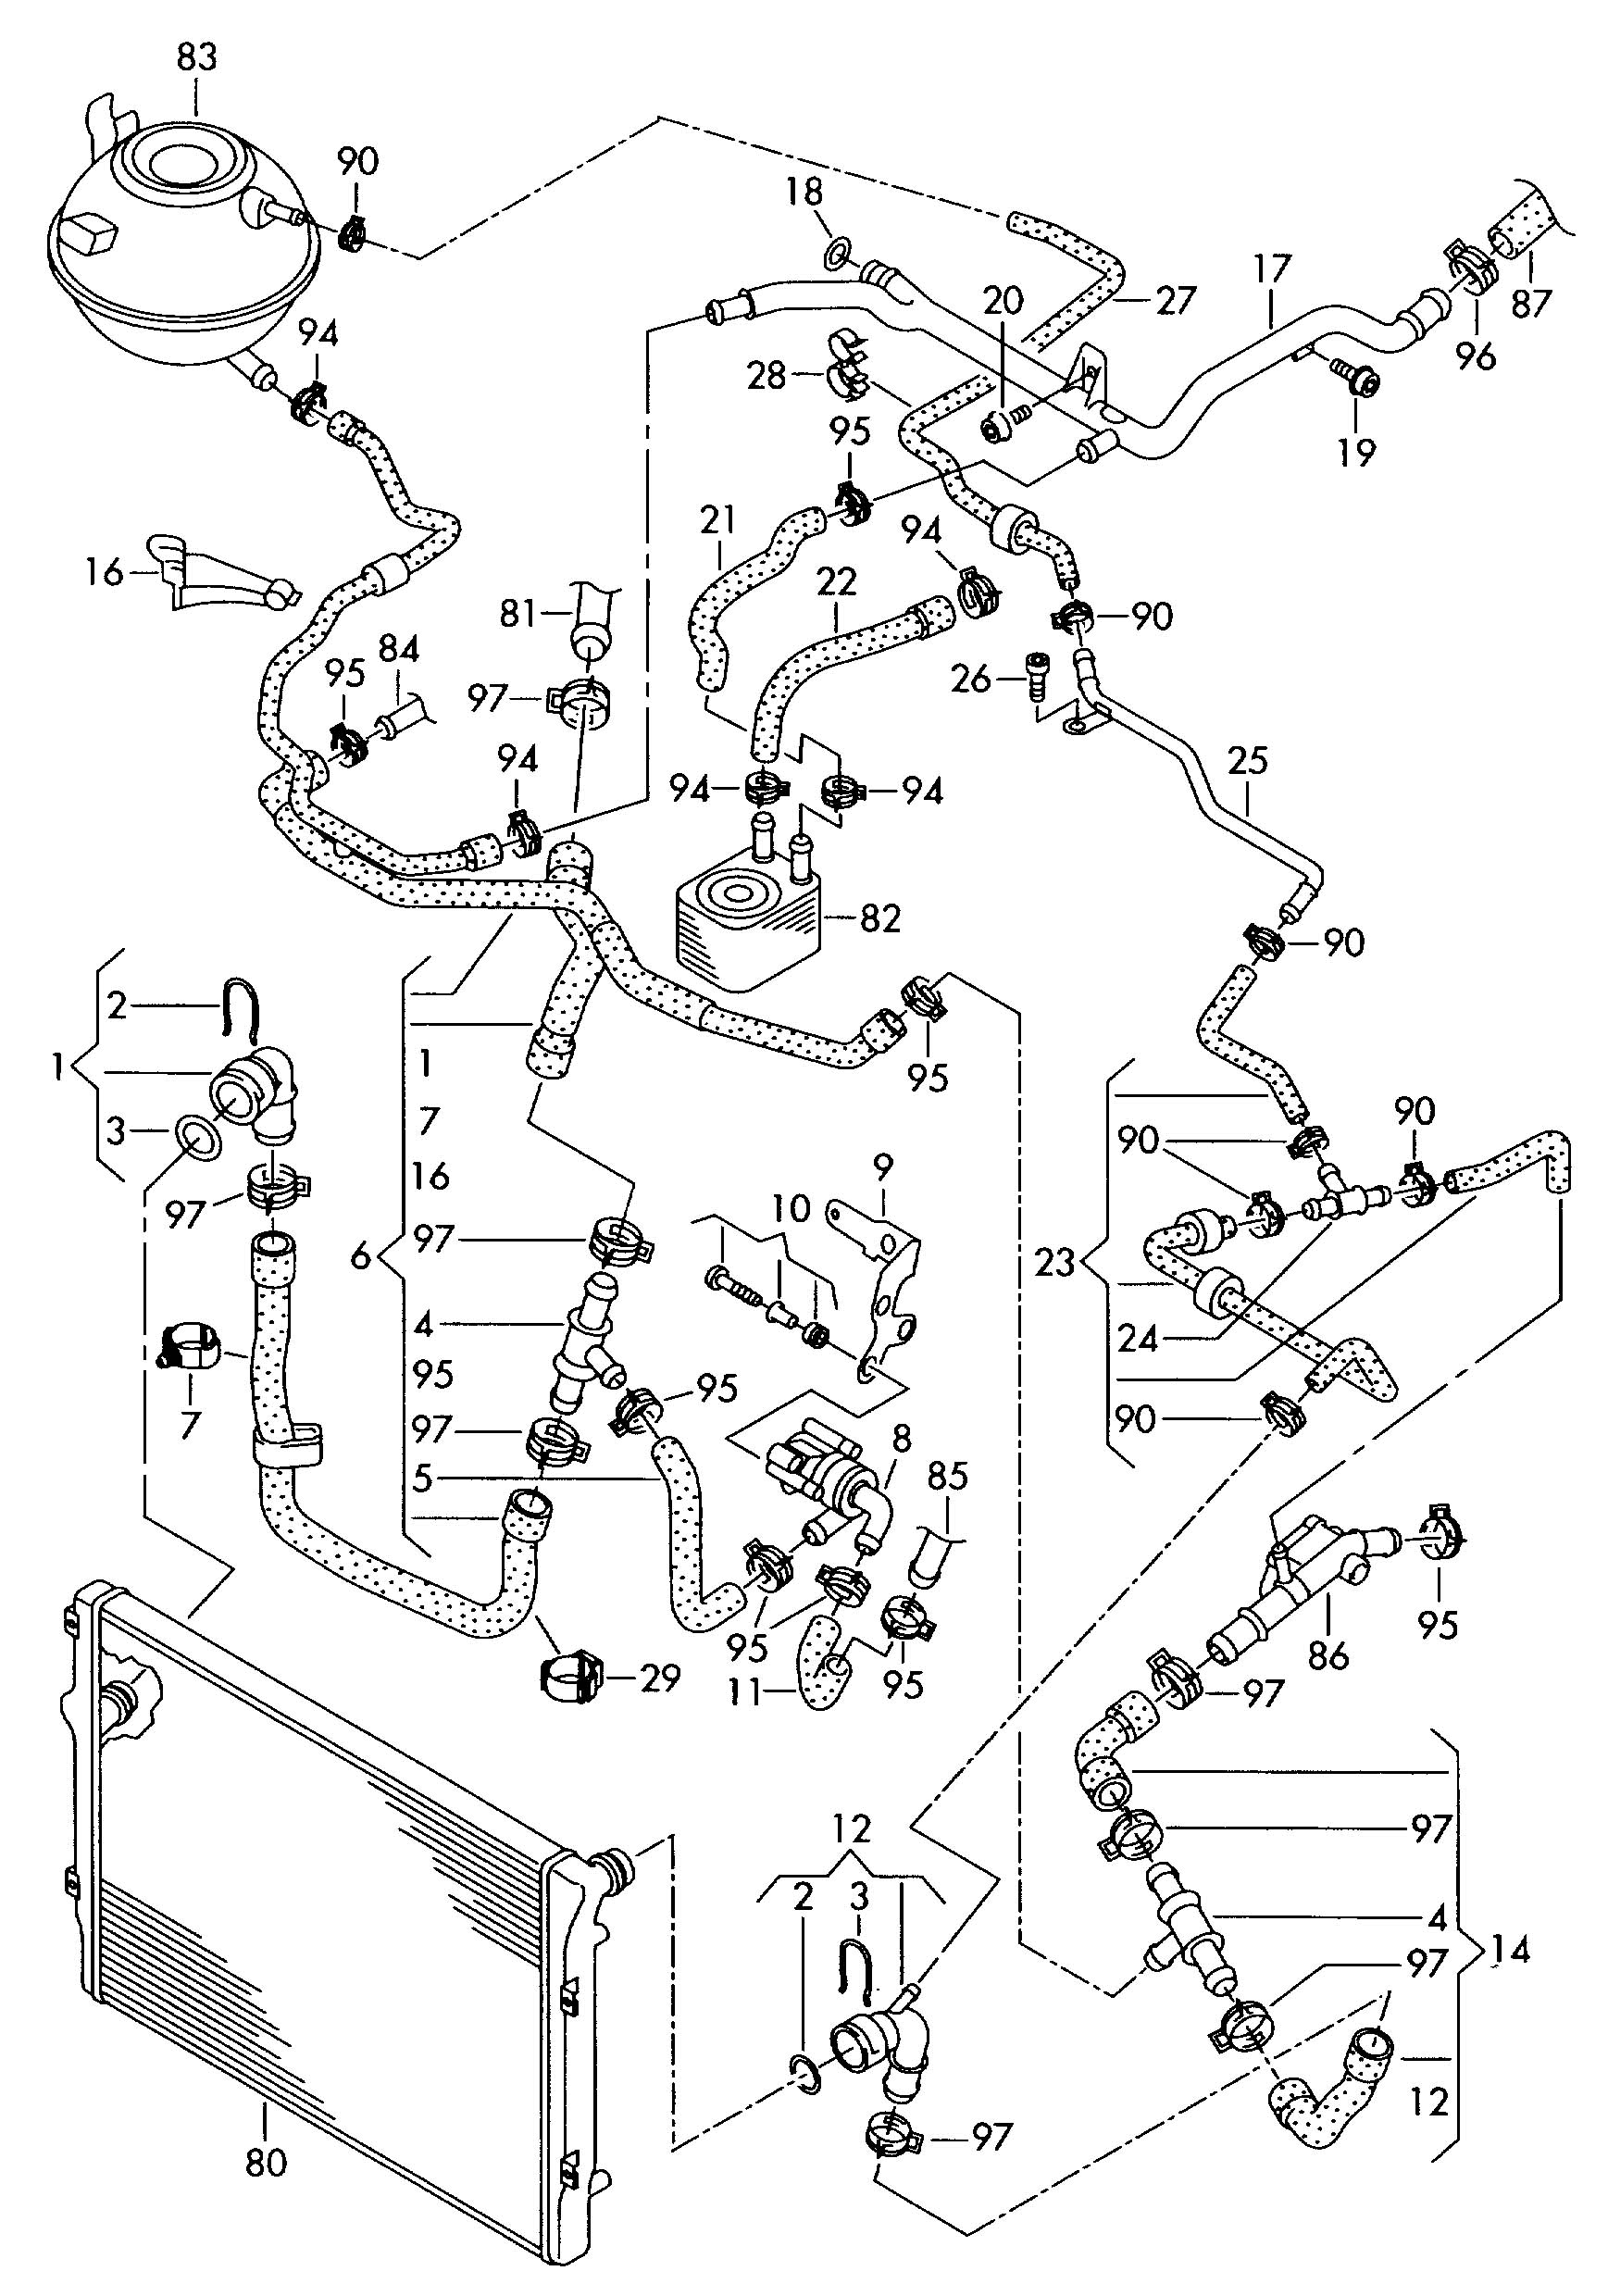 hight resolution of ford ranger manual transmission wiring diagram wiring library 2000 ford ranger transmission diagram ford wiring